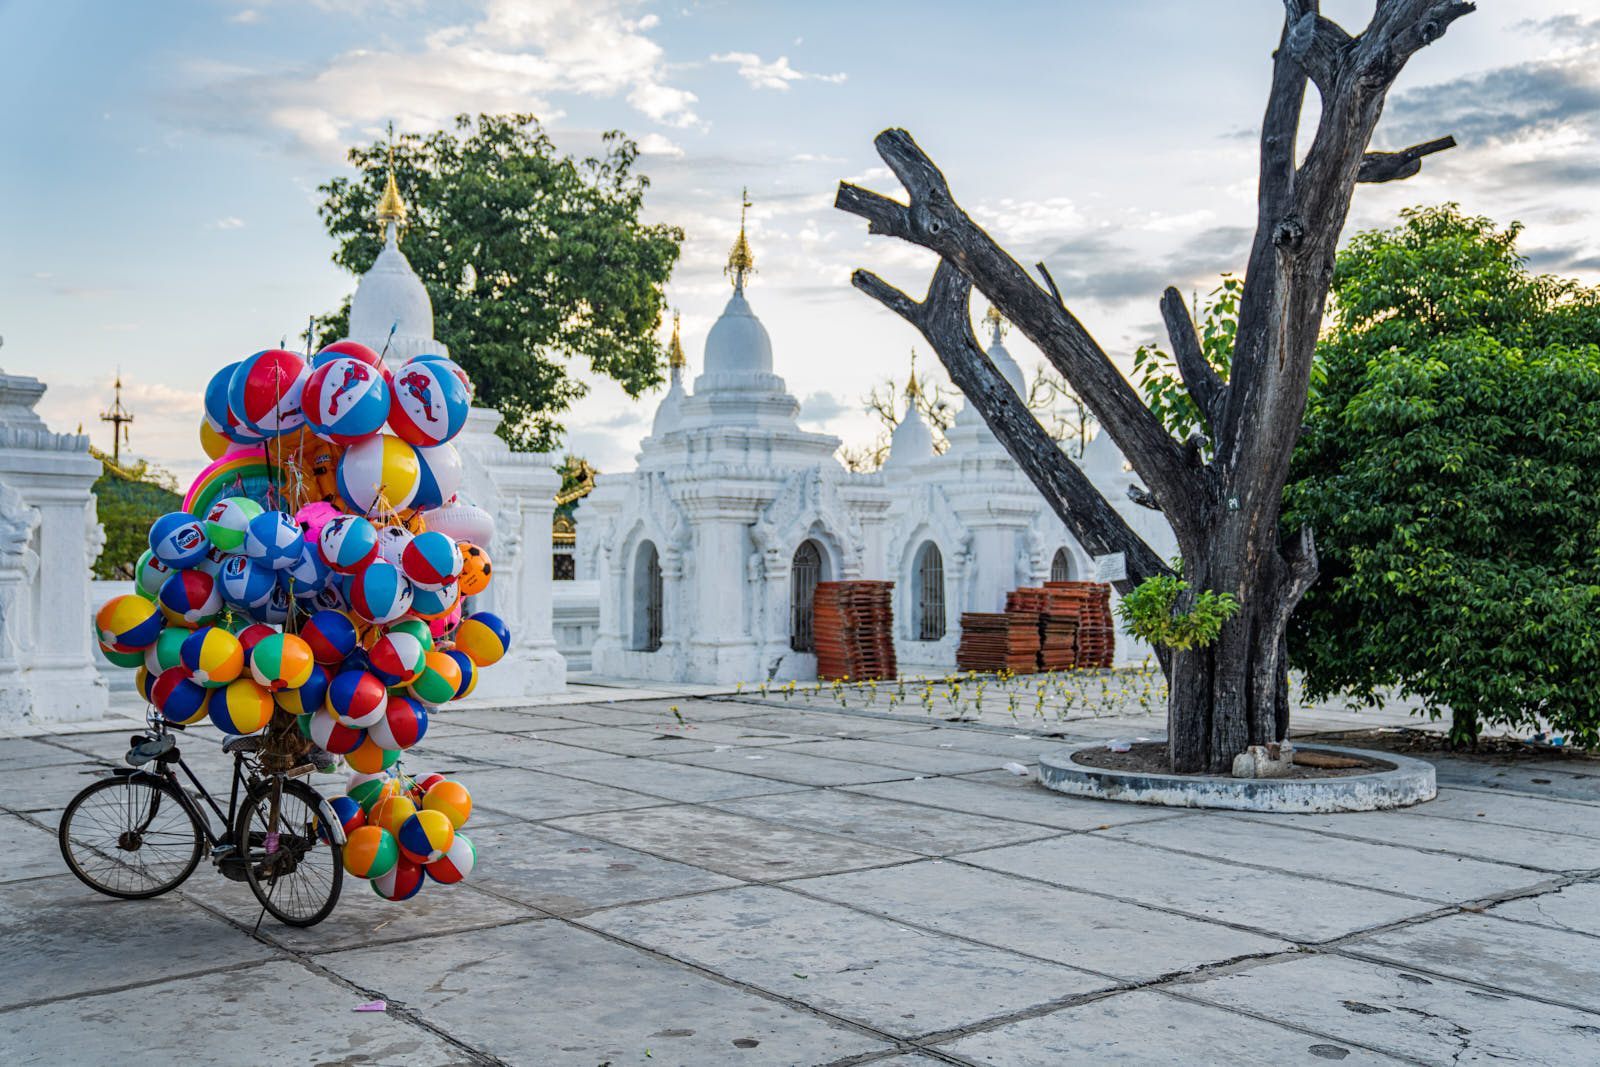 Mandalay_Sandamuni_Pagode_14Oct2019_Jeru